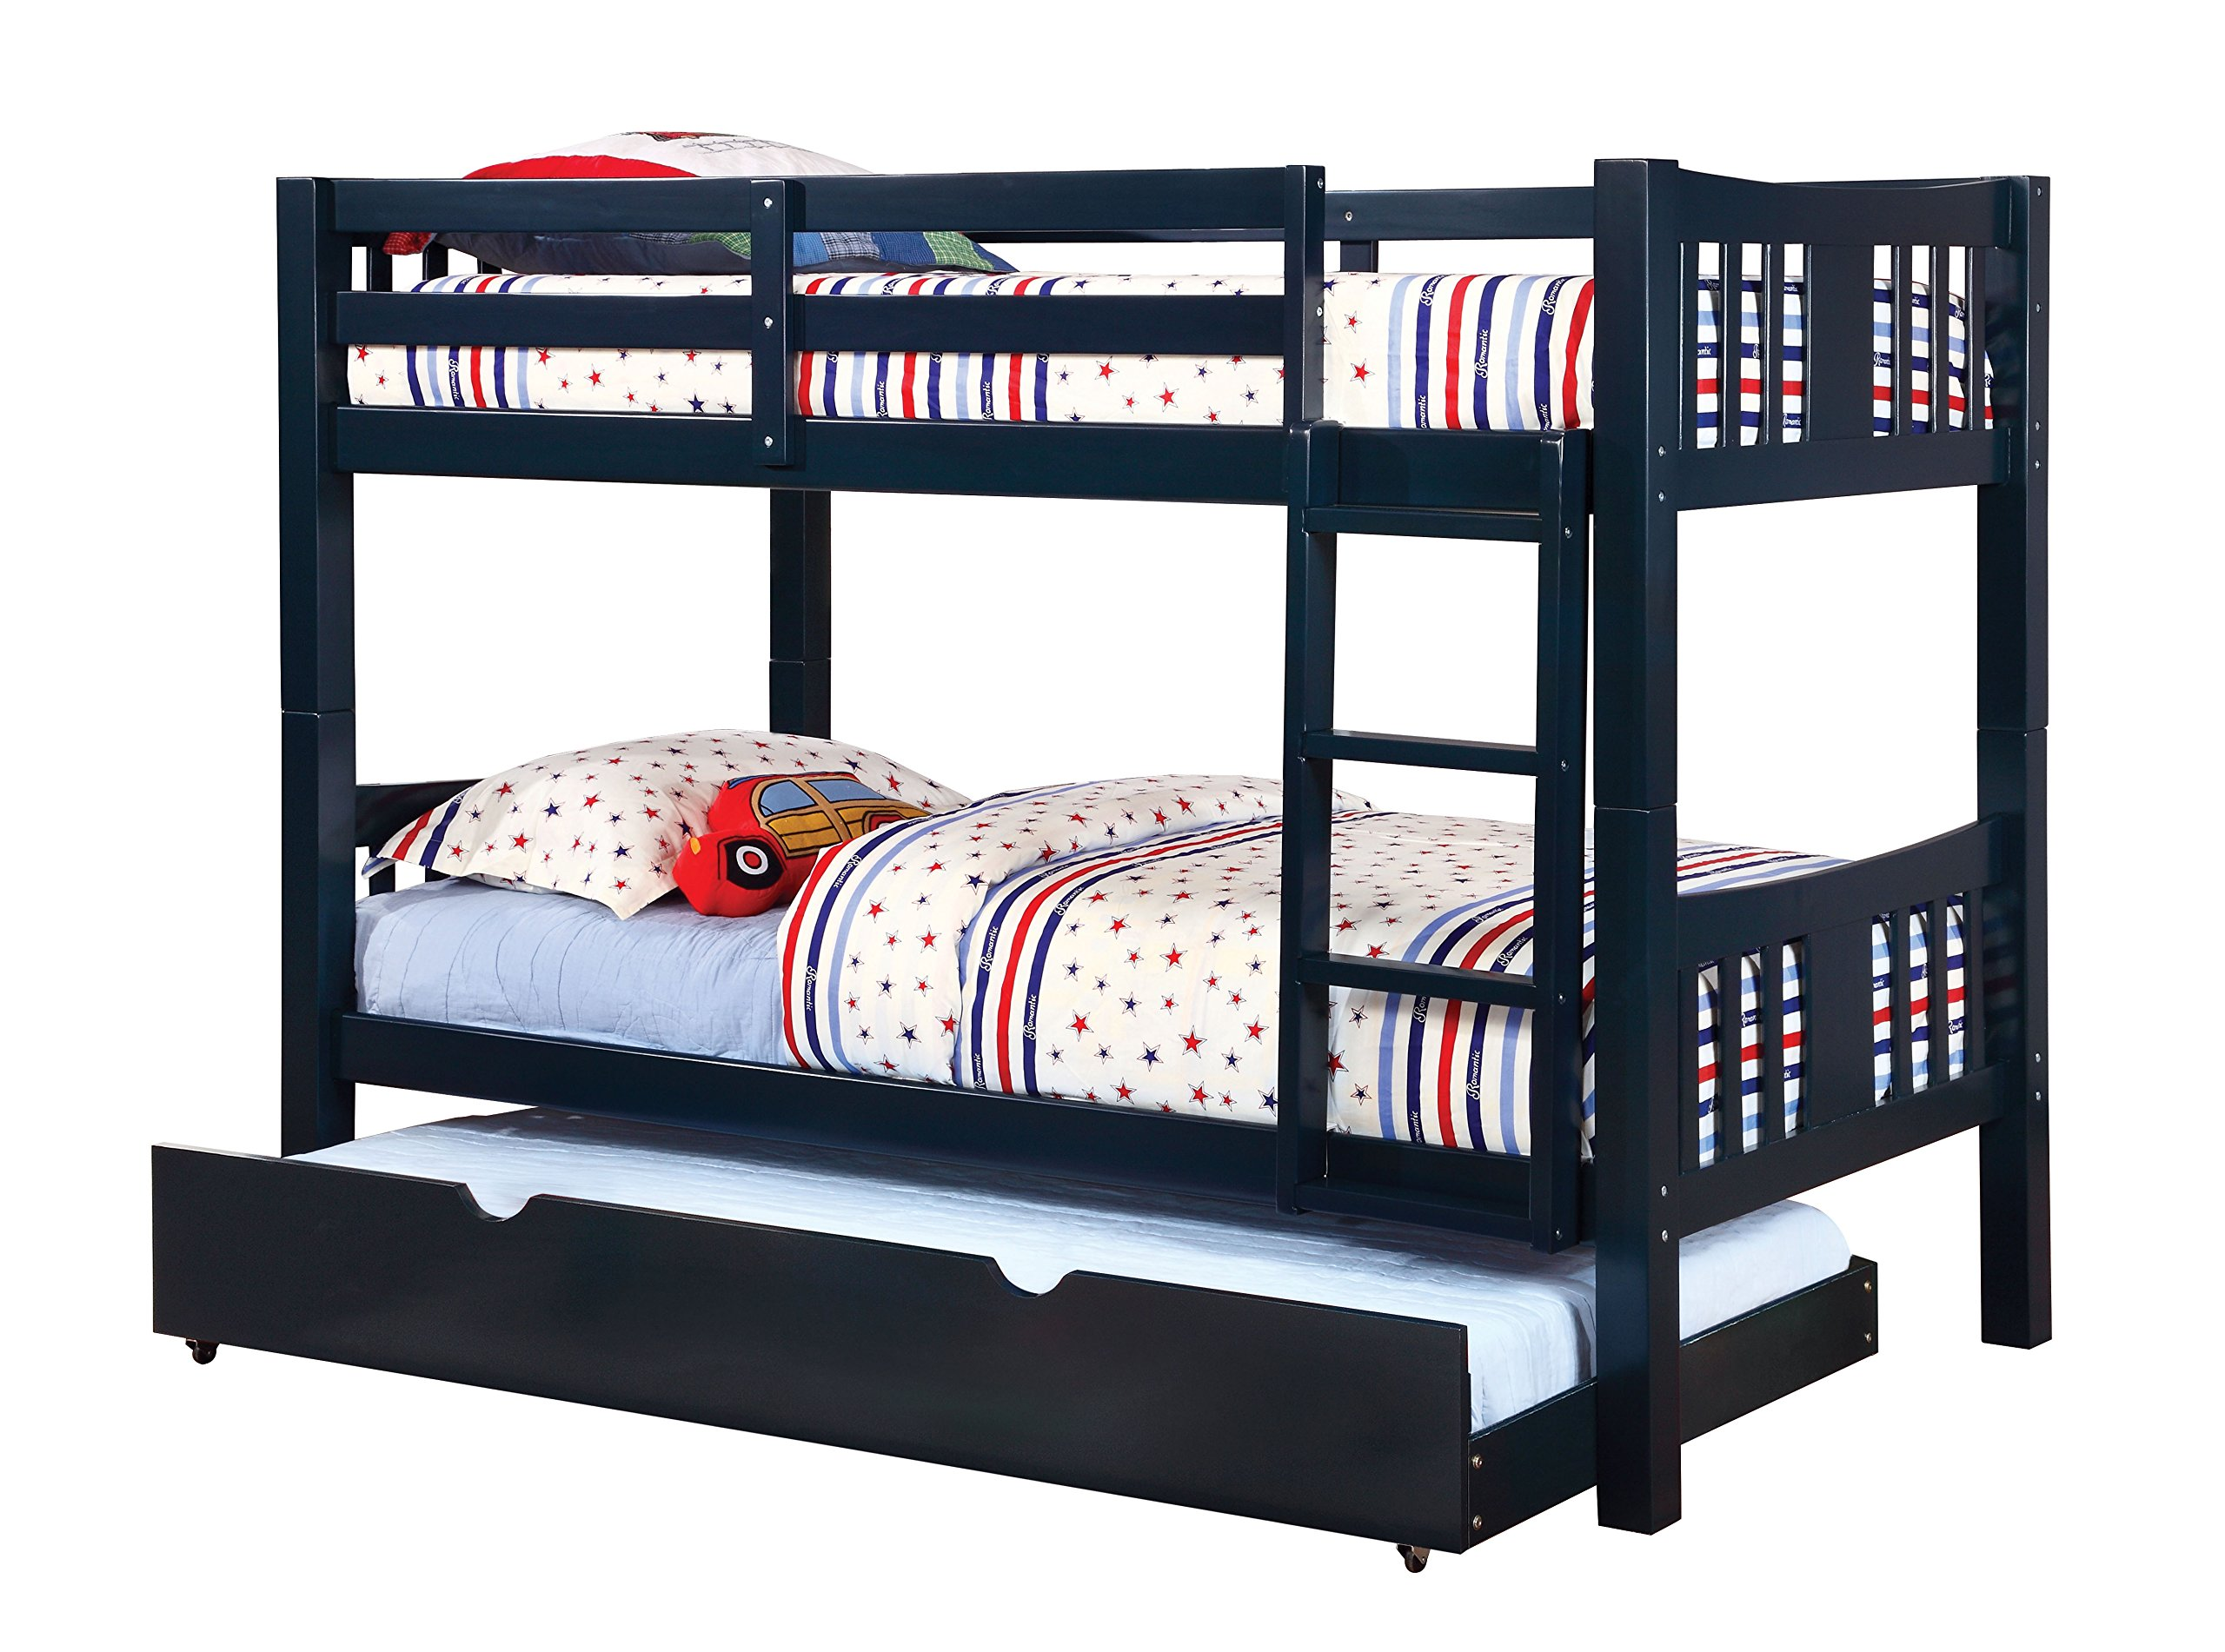 Furniture of America 2 Piece Davis Transitional Bunk Bed with Trundle Set, Twin/Twin, Blue by Furniture of America